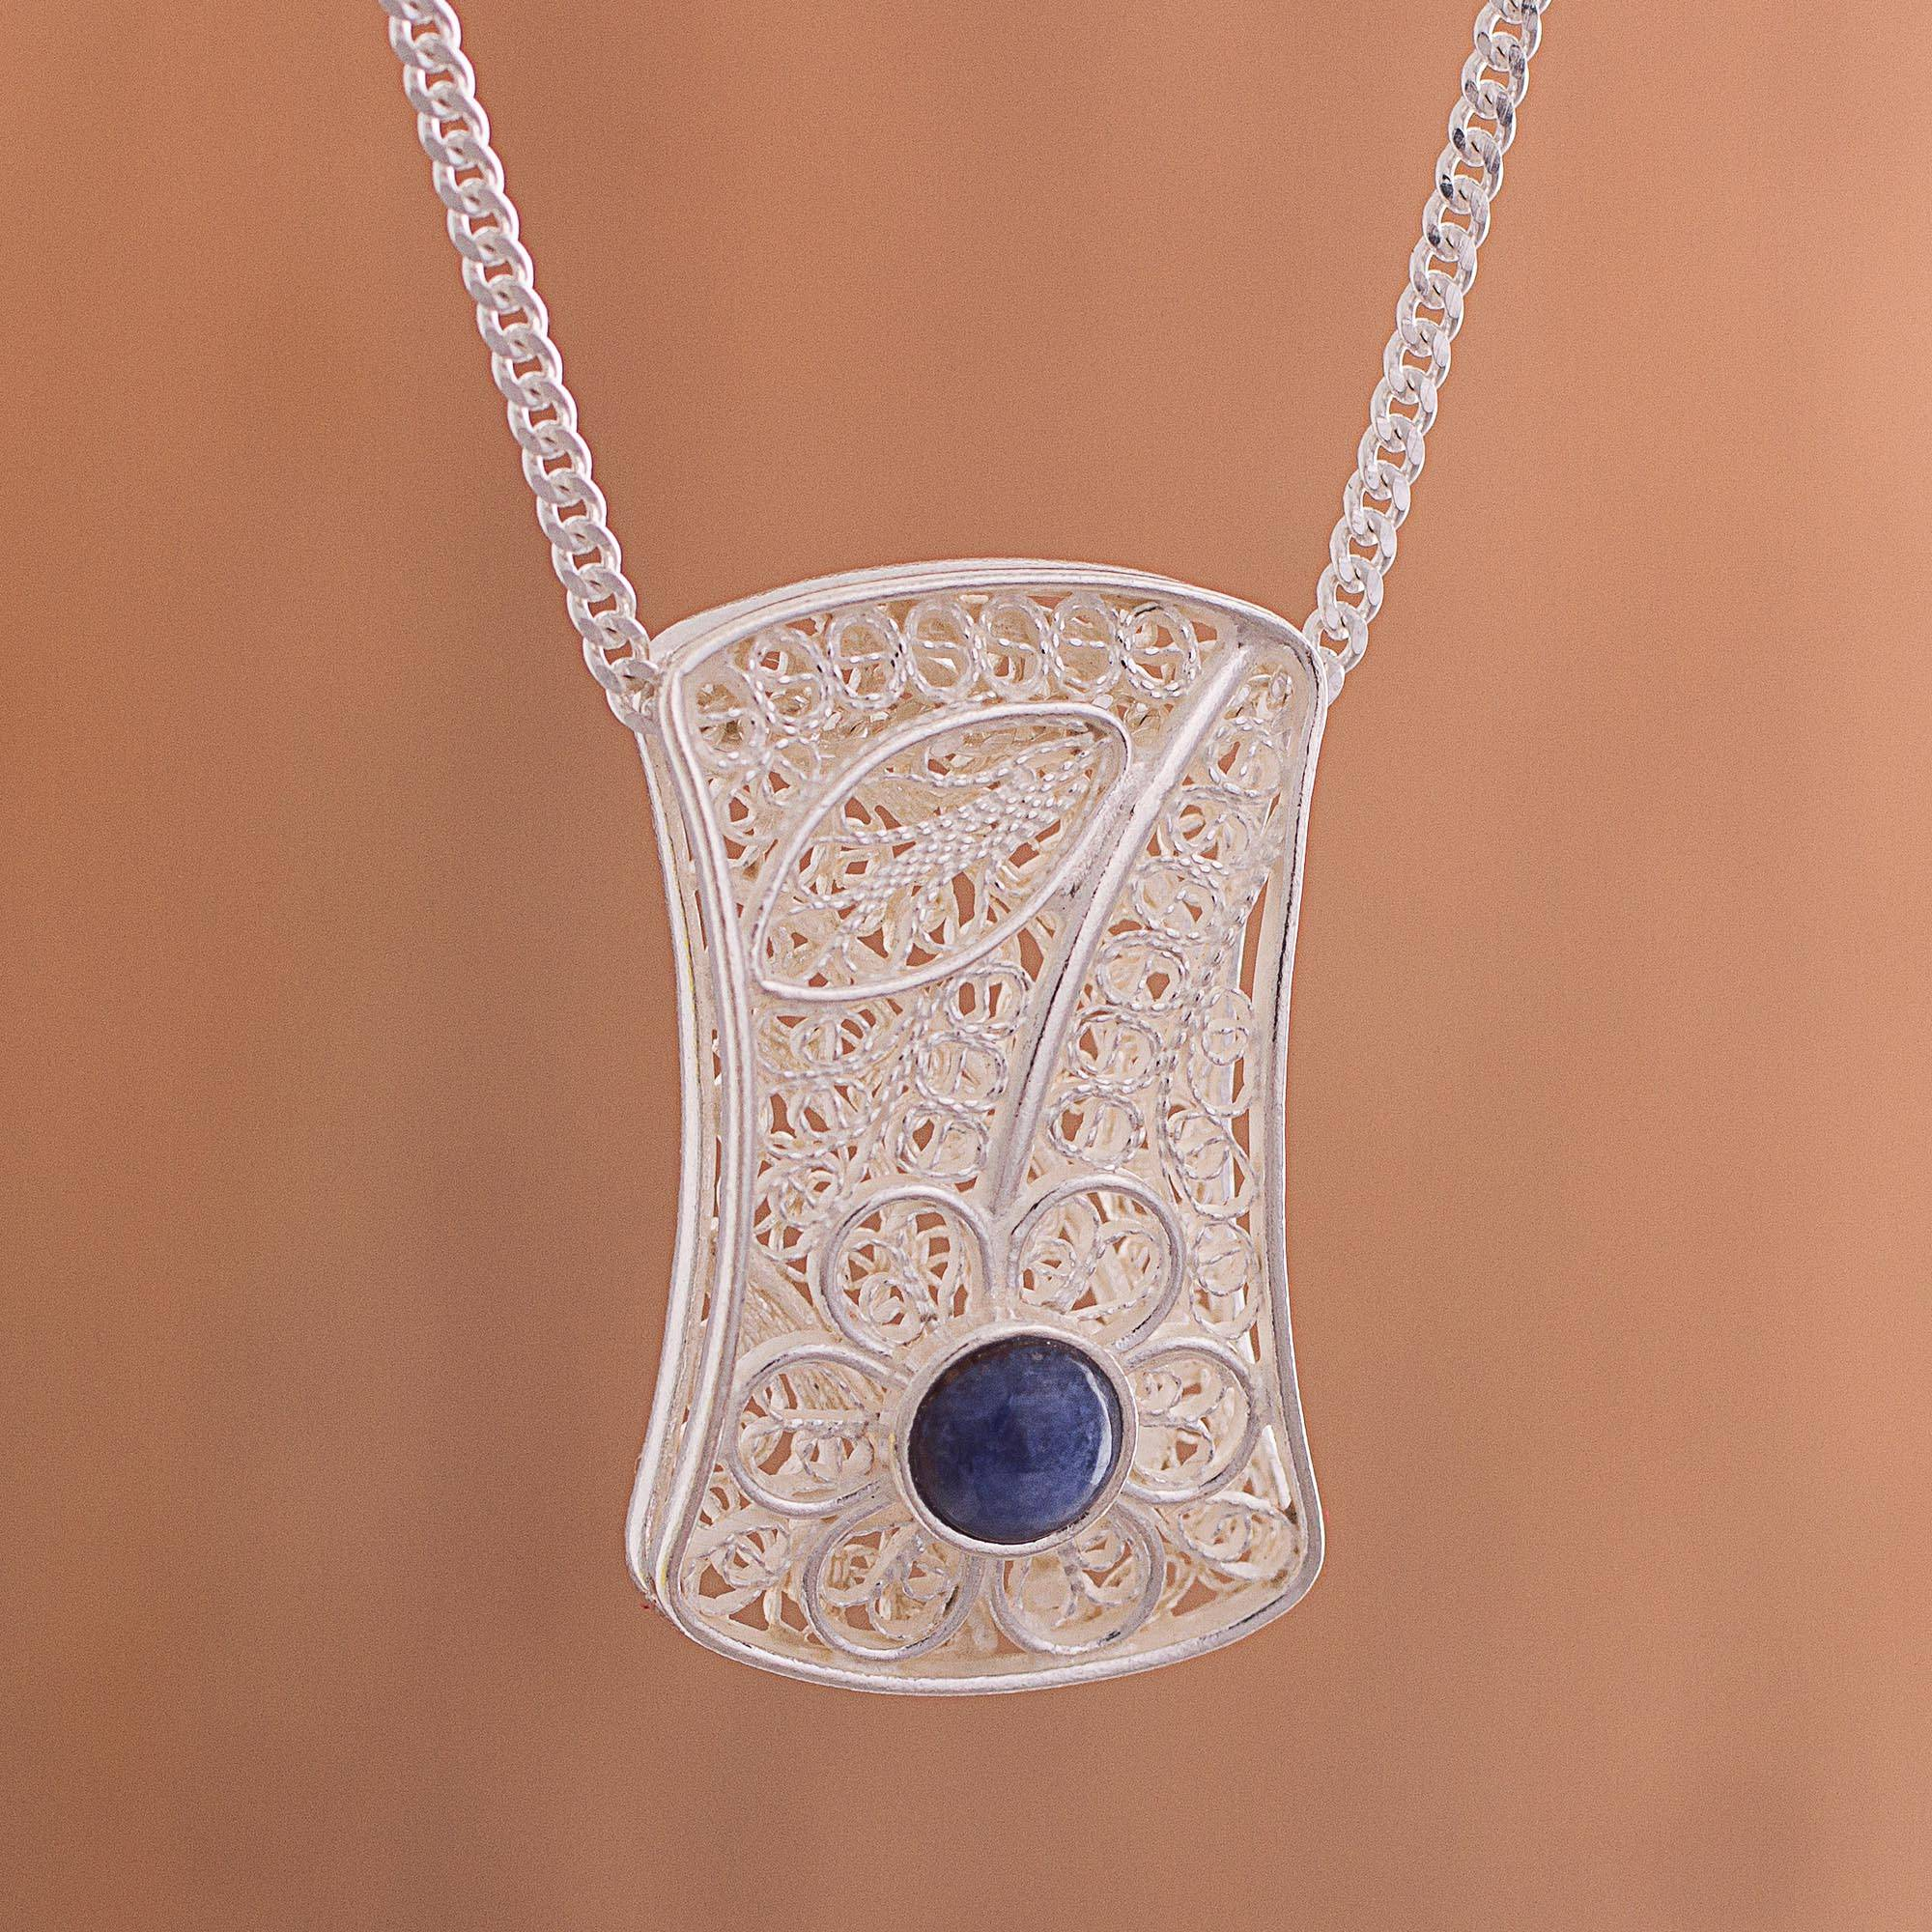 Day to Night Elegance Reversible Sodalite Onyx Sterling Silver Pendant Necklace Art and Tradition in Silver